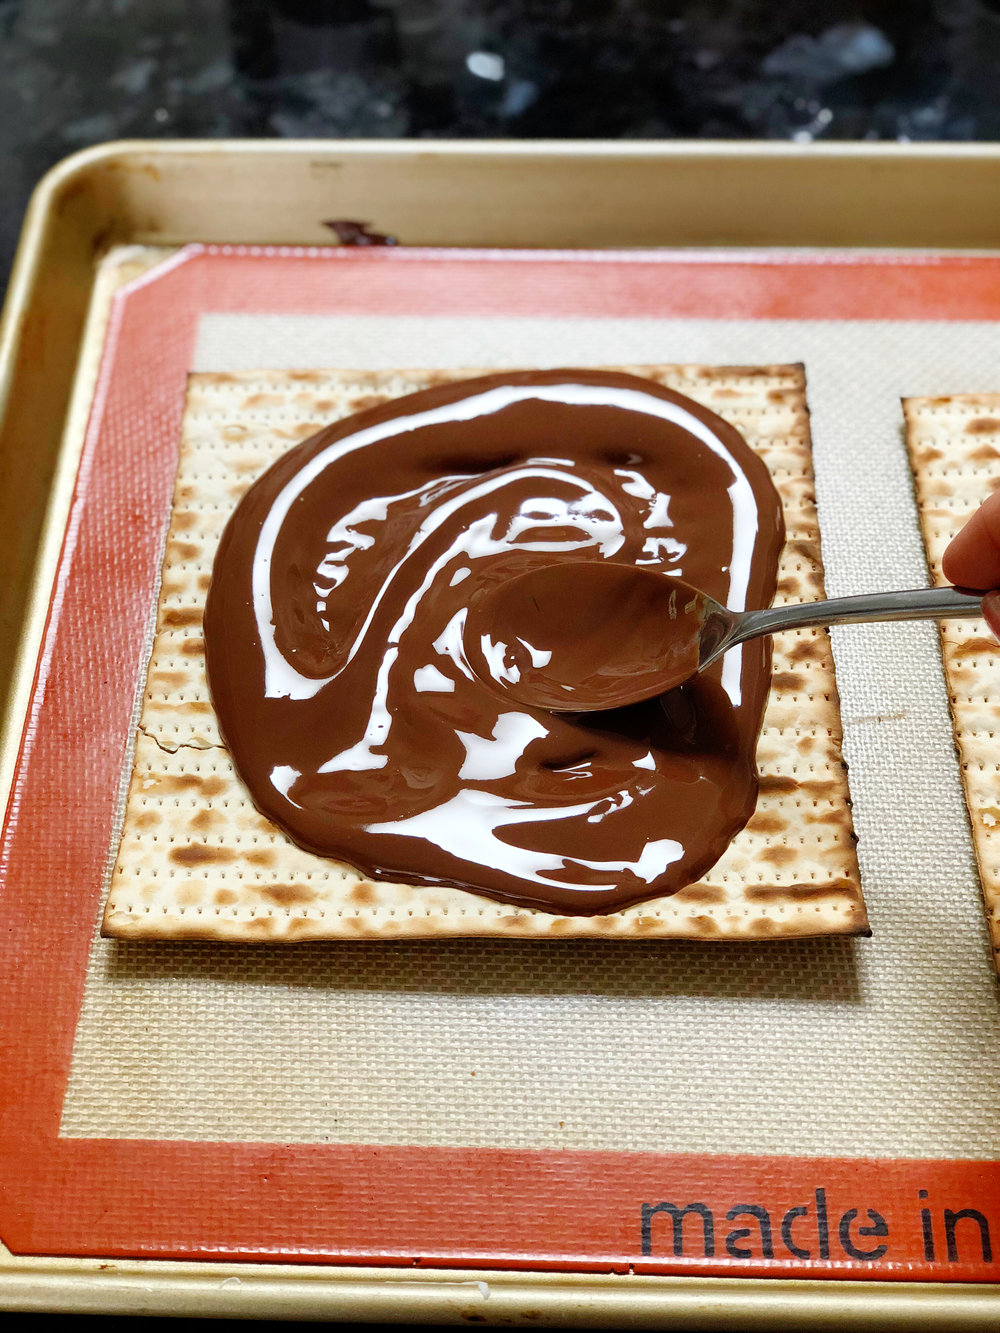 5. Now, pour half the chocolate mix over each matzah and spread around in an even layer with a spoon or spatula.